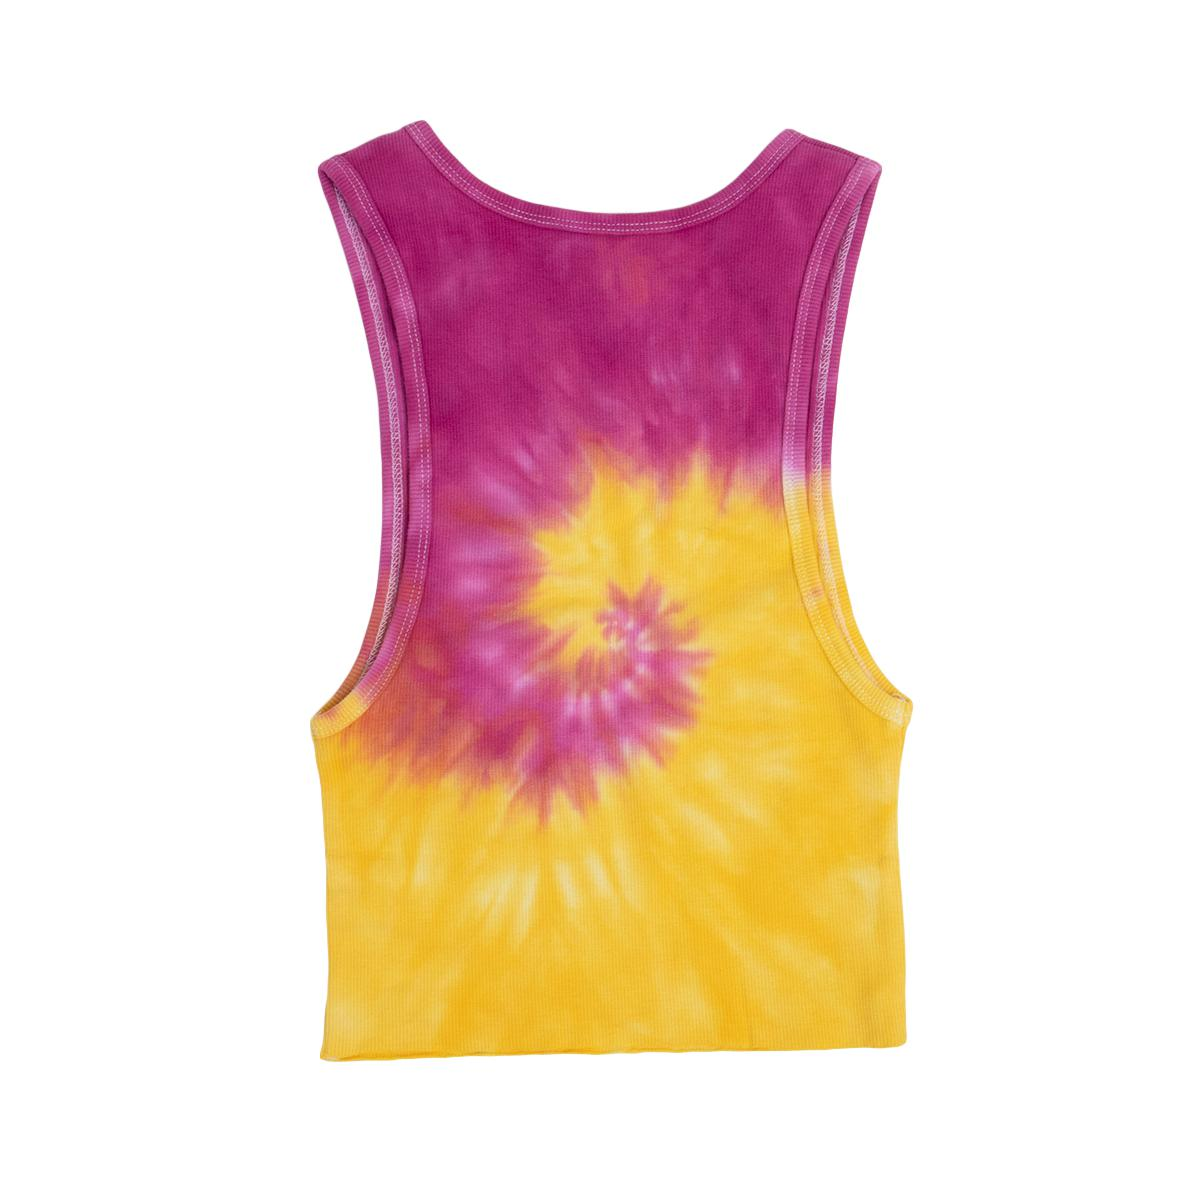 Call Her Daddy Tie Dye Cropped Tank